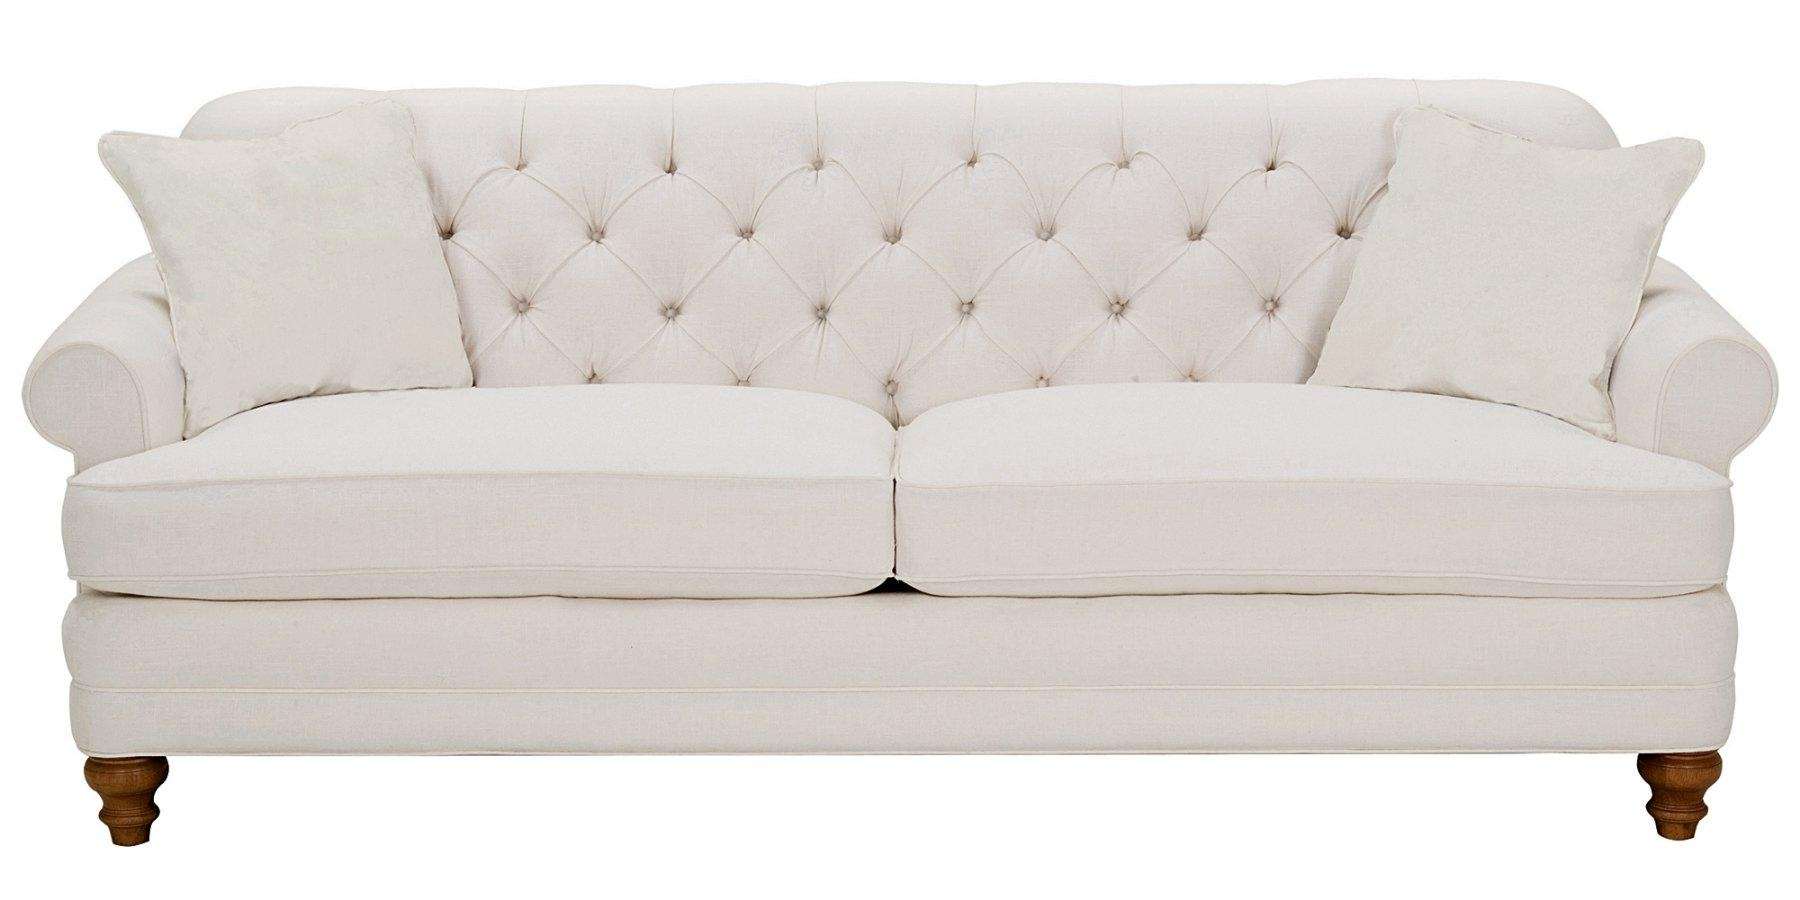 Arhaus Club Sofa With Concept Hd Images 24978 | Kengire Throughout Arhaus  Club Sofas (Photo